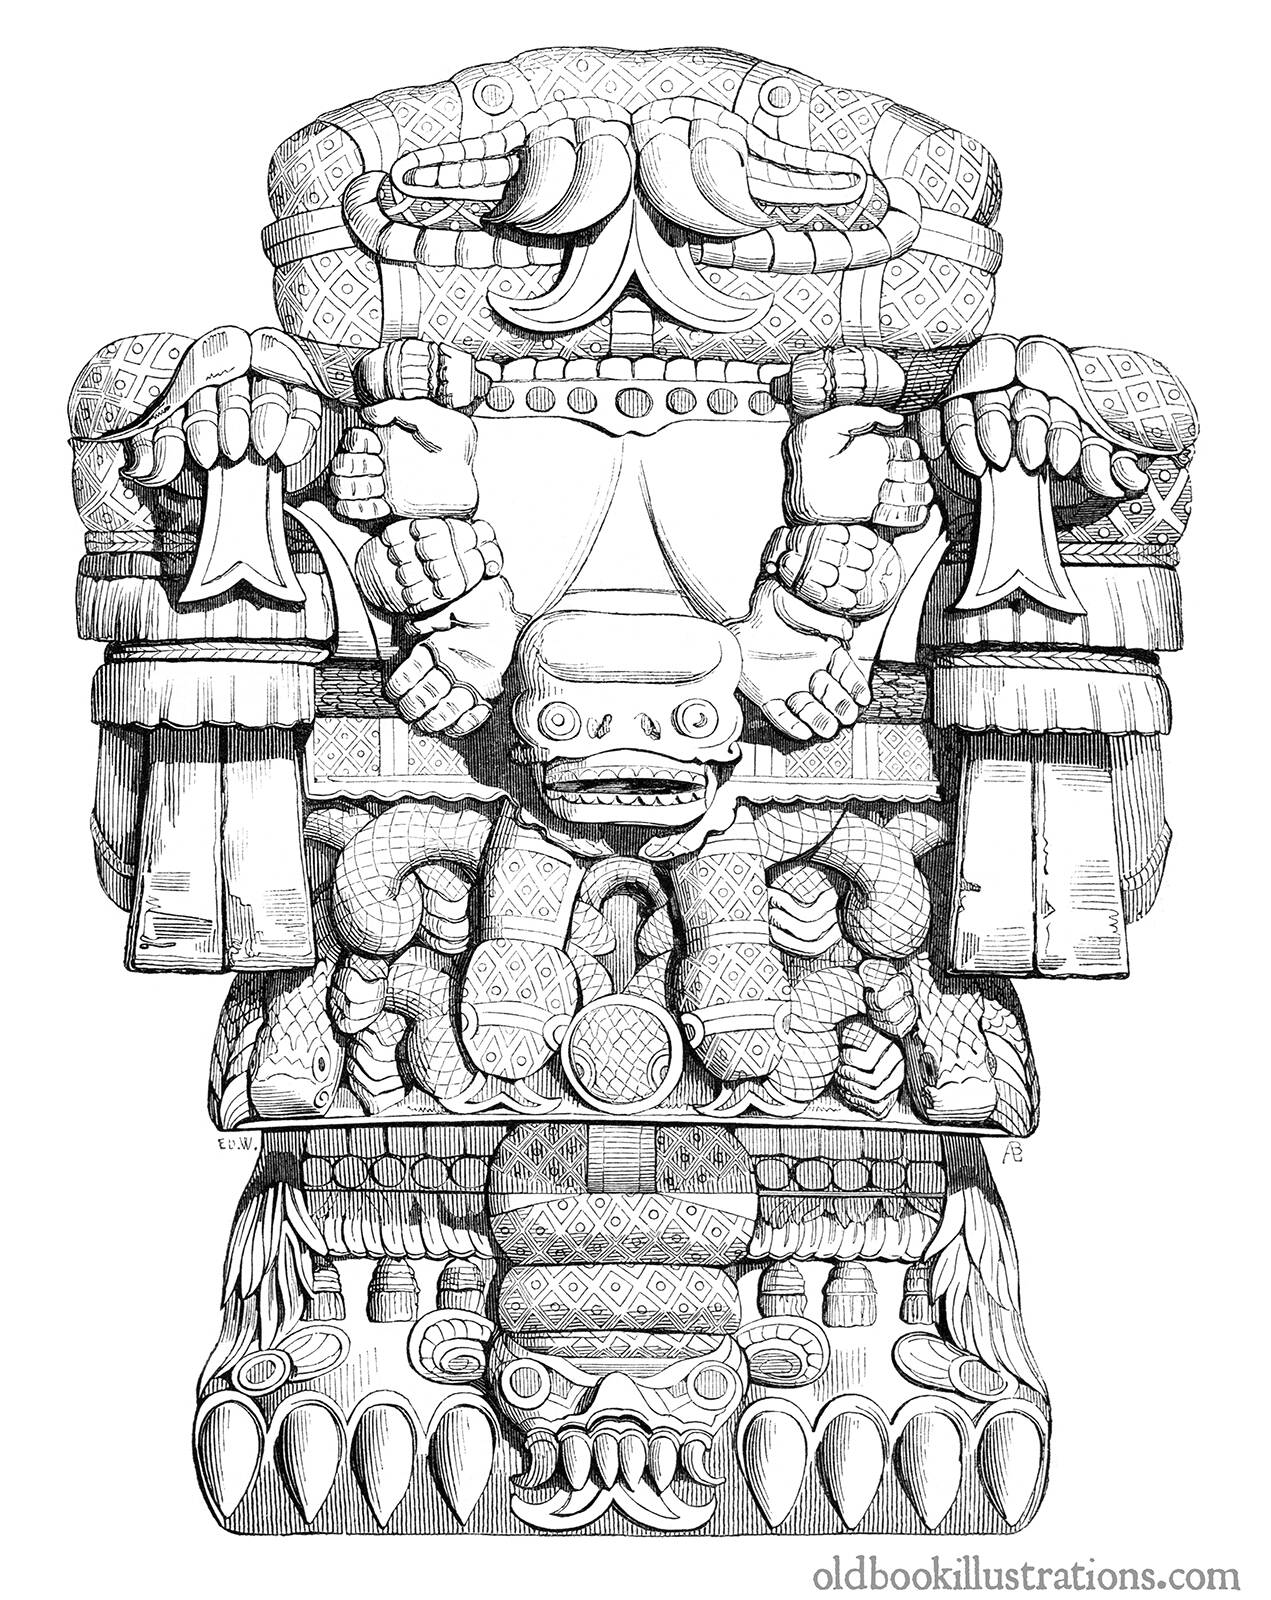 Aztec Goddess Coatlicue – Old Book Illustrations